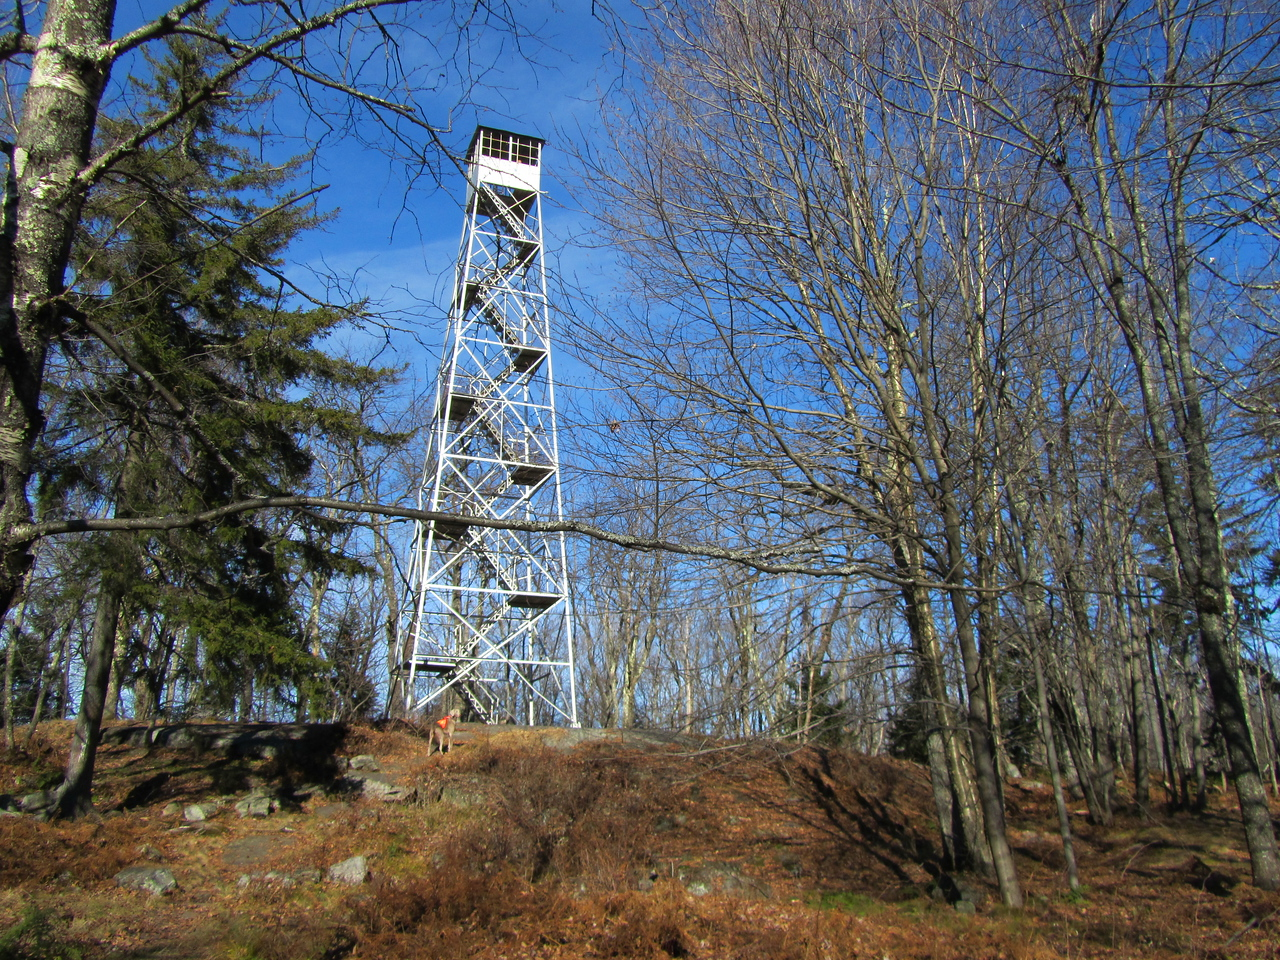 Kane Mountain fire tower. Gunter heading up to take a look. This tower was restored and open to the public but it is too steep for the dog and he gets nervous when I go up so we do not have pictures from the cab.